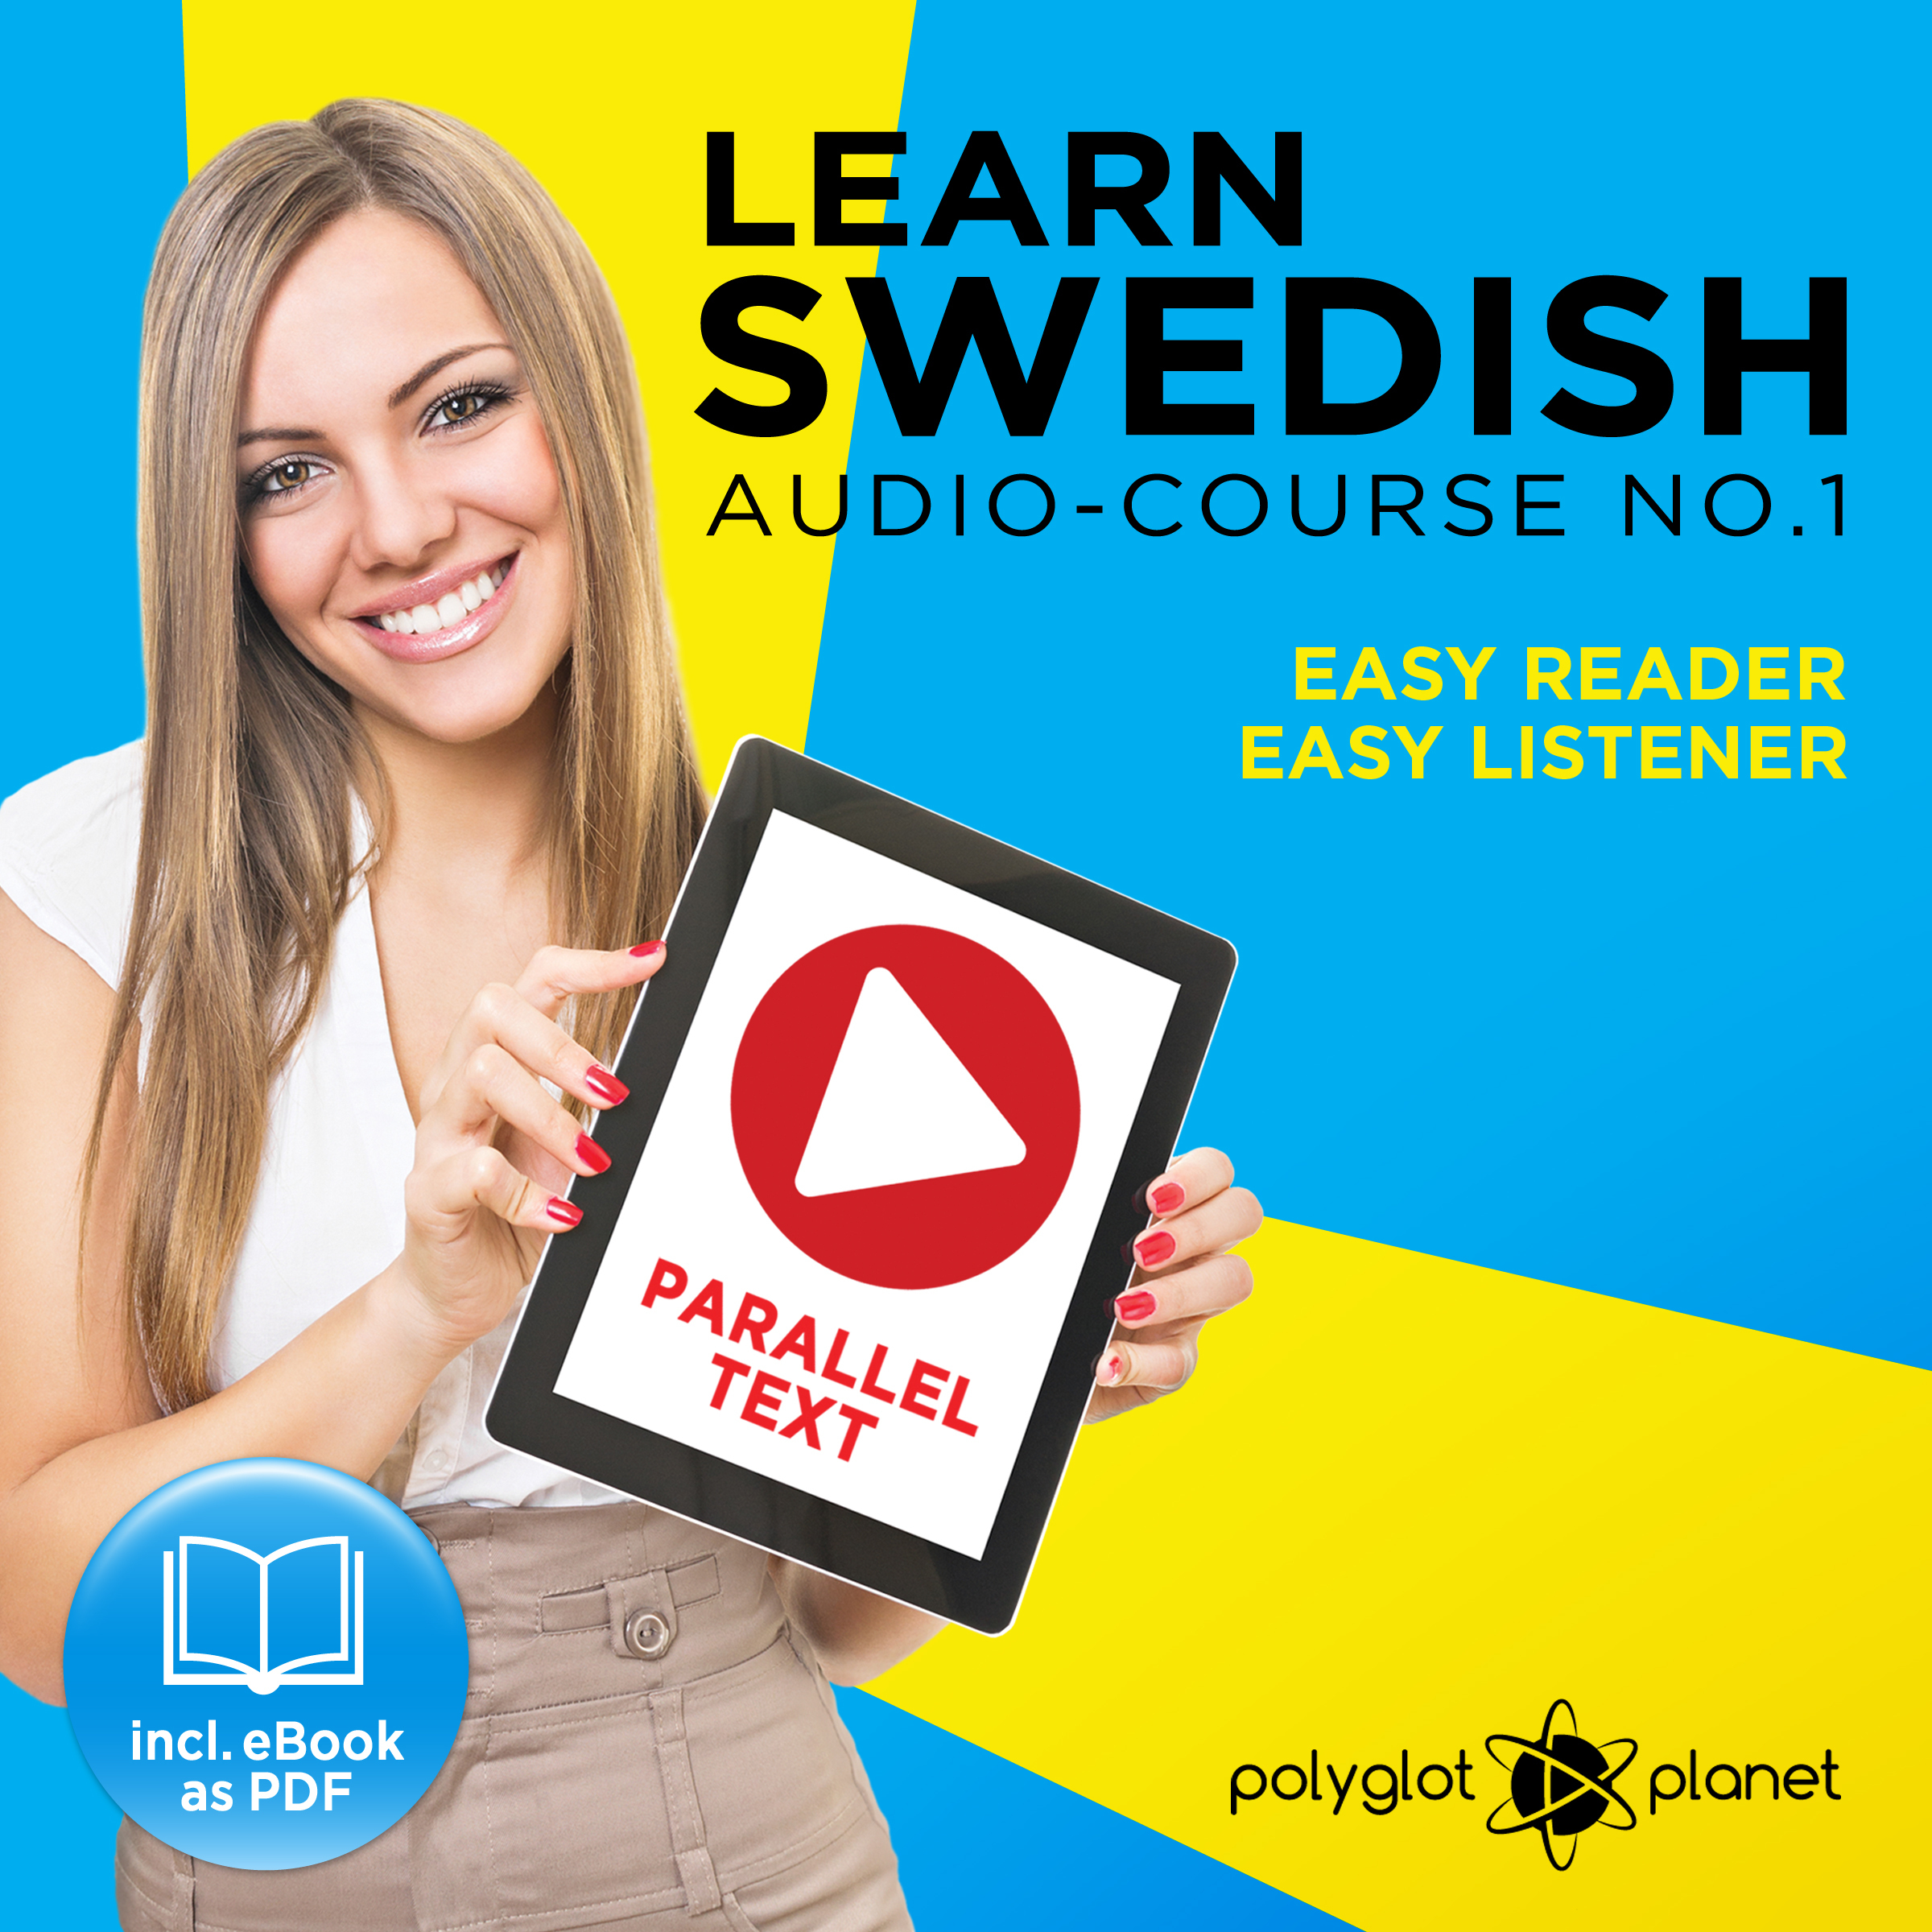 Printable Learn Swedish Easy Reader - Easy Listener - Parallel Text - Swedish Audio Course No. 1 - The Swedish Easy Reader - Easy Audio Learning Course Audiobook Cover Art